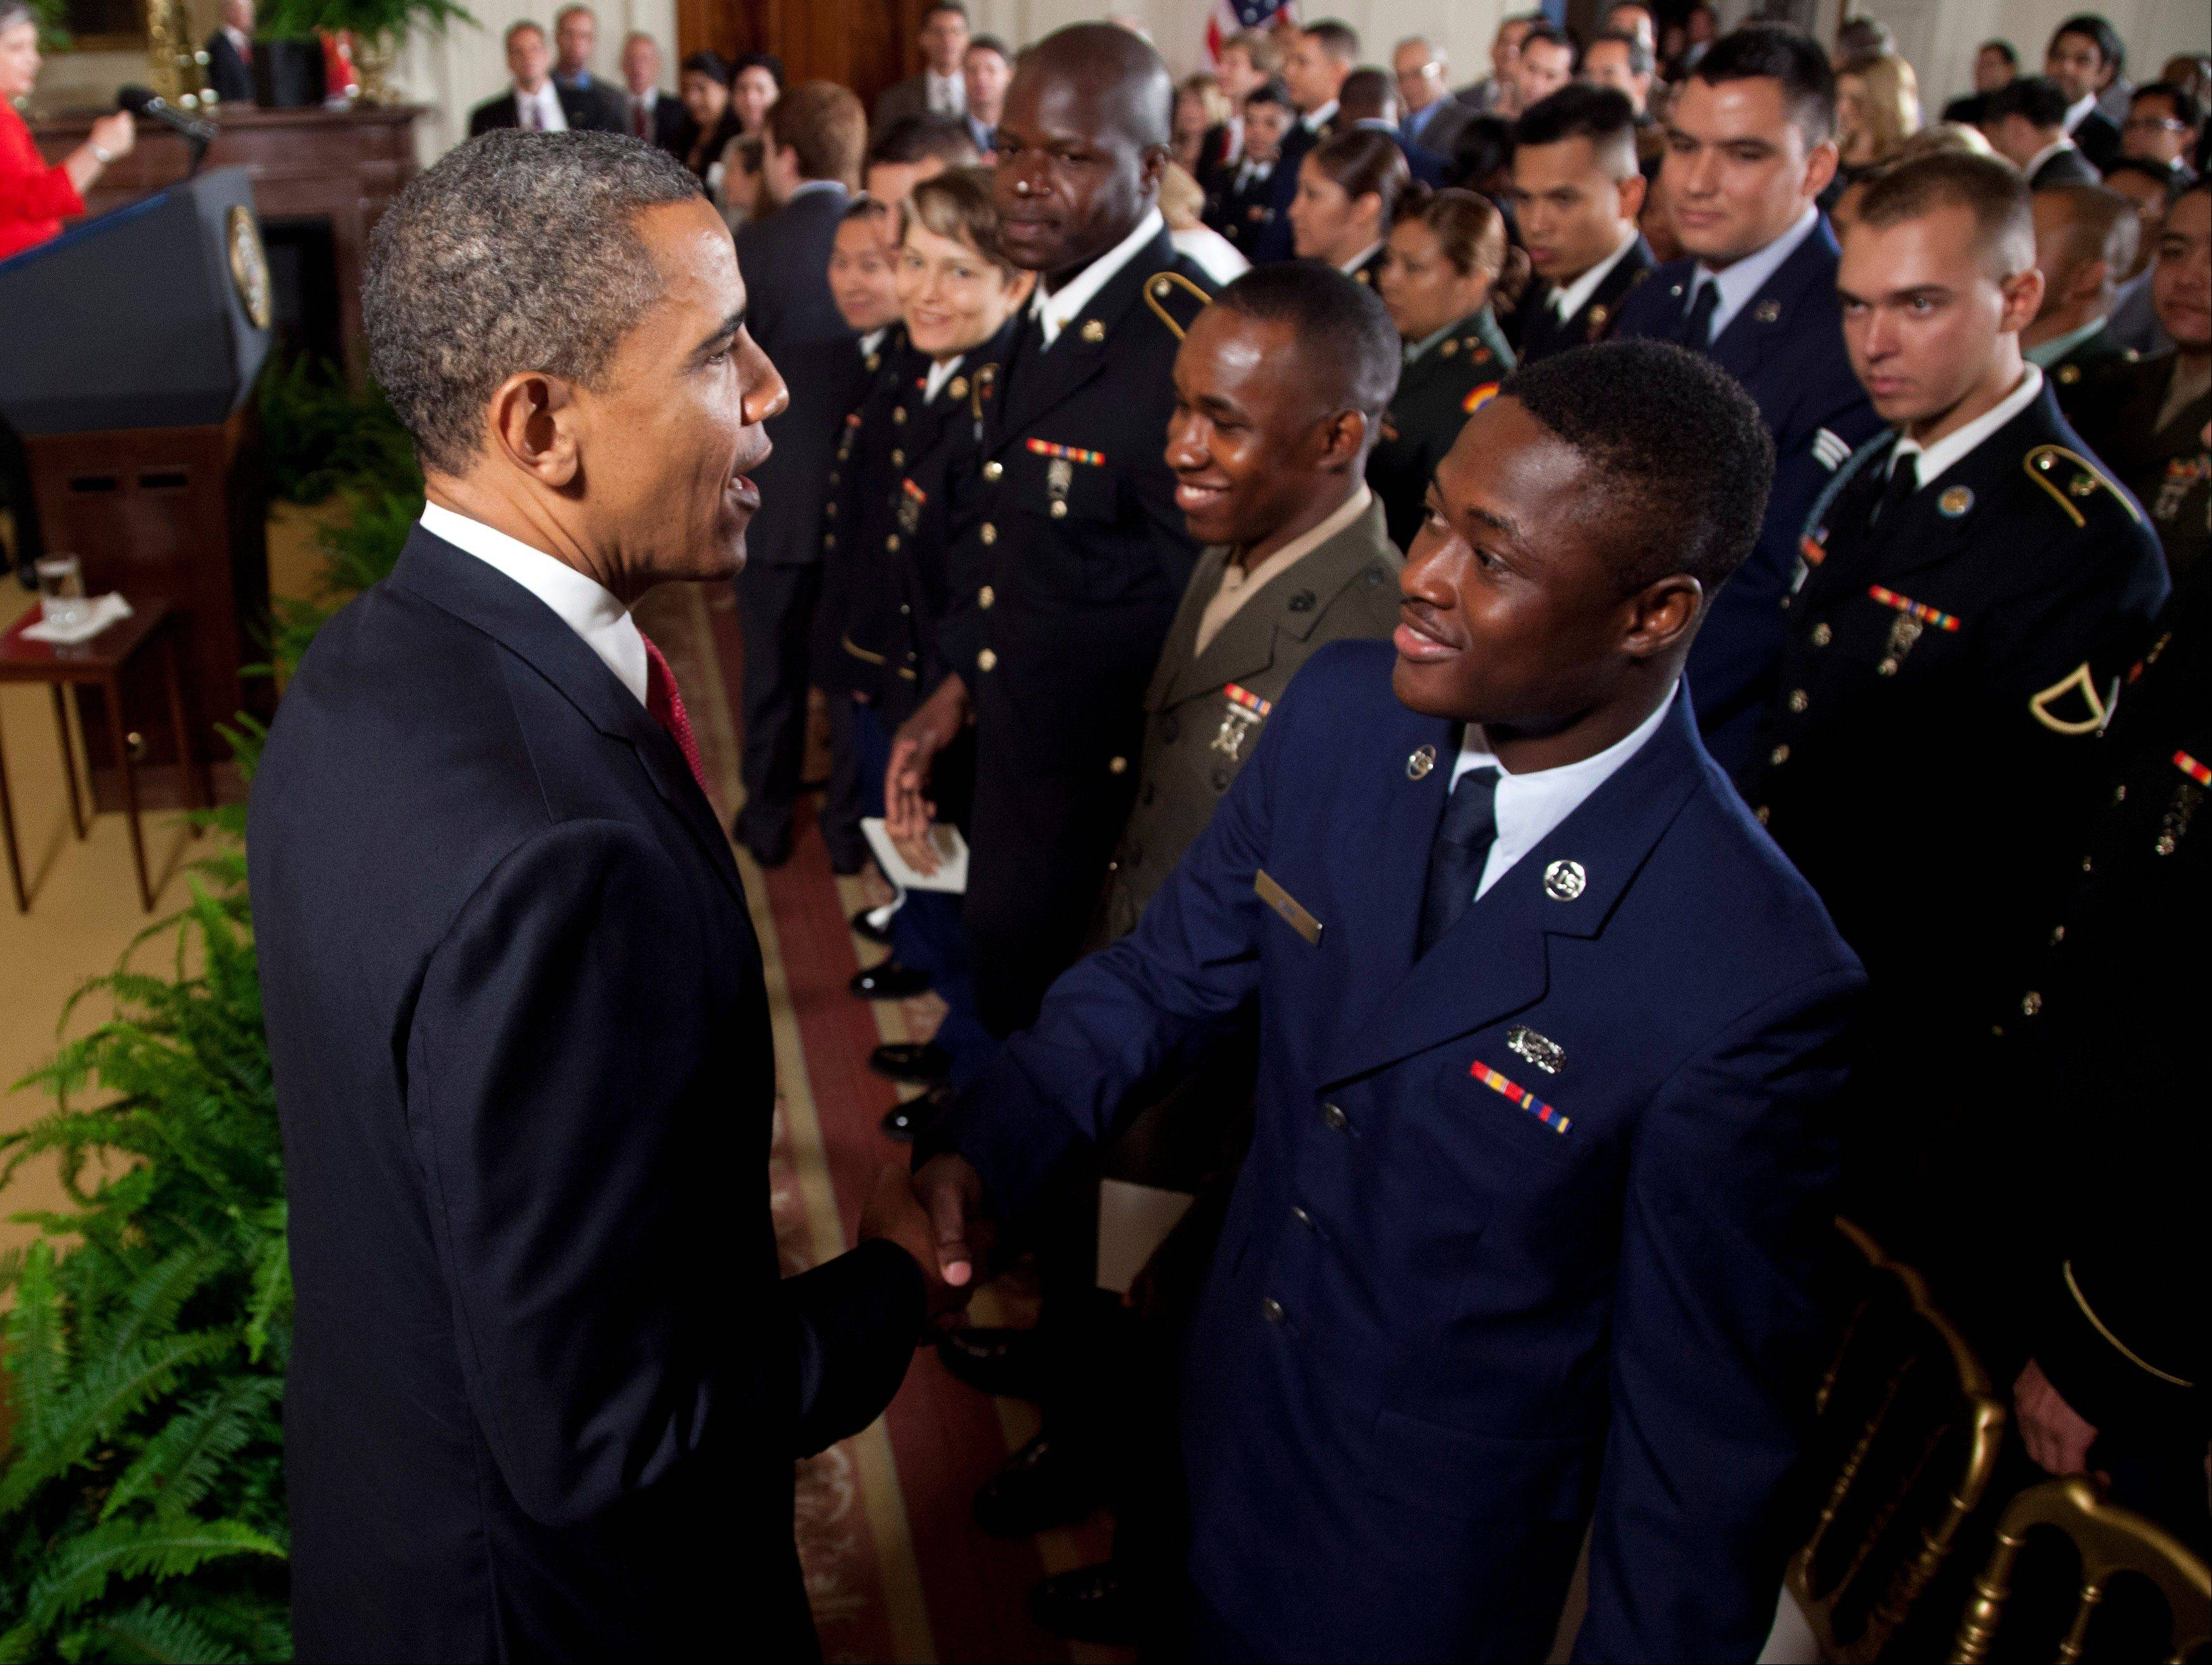 President Barack Obama greets service members after they became U.S. citizens during a naturalization ceremony in the East Room of the White House on Wednesday.